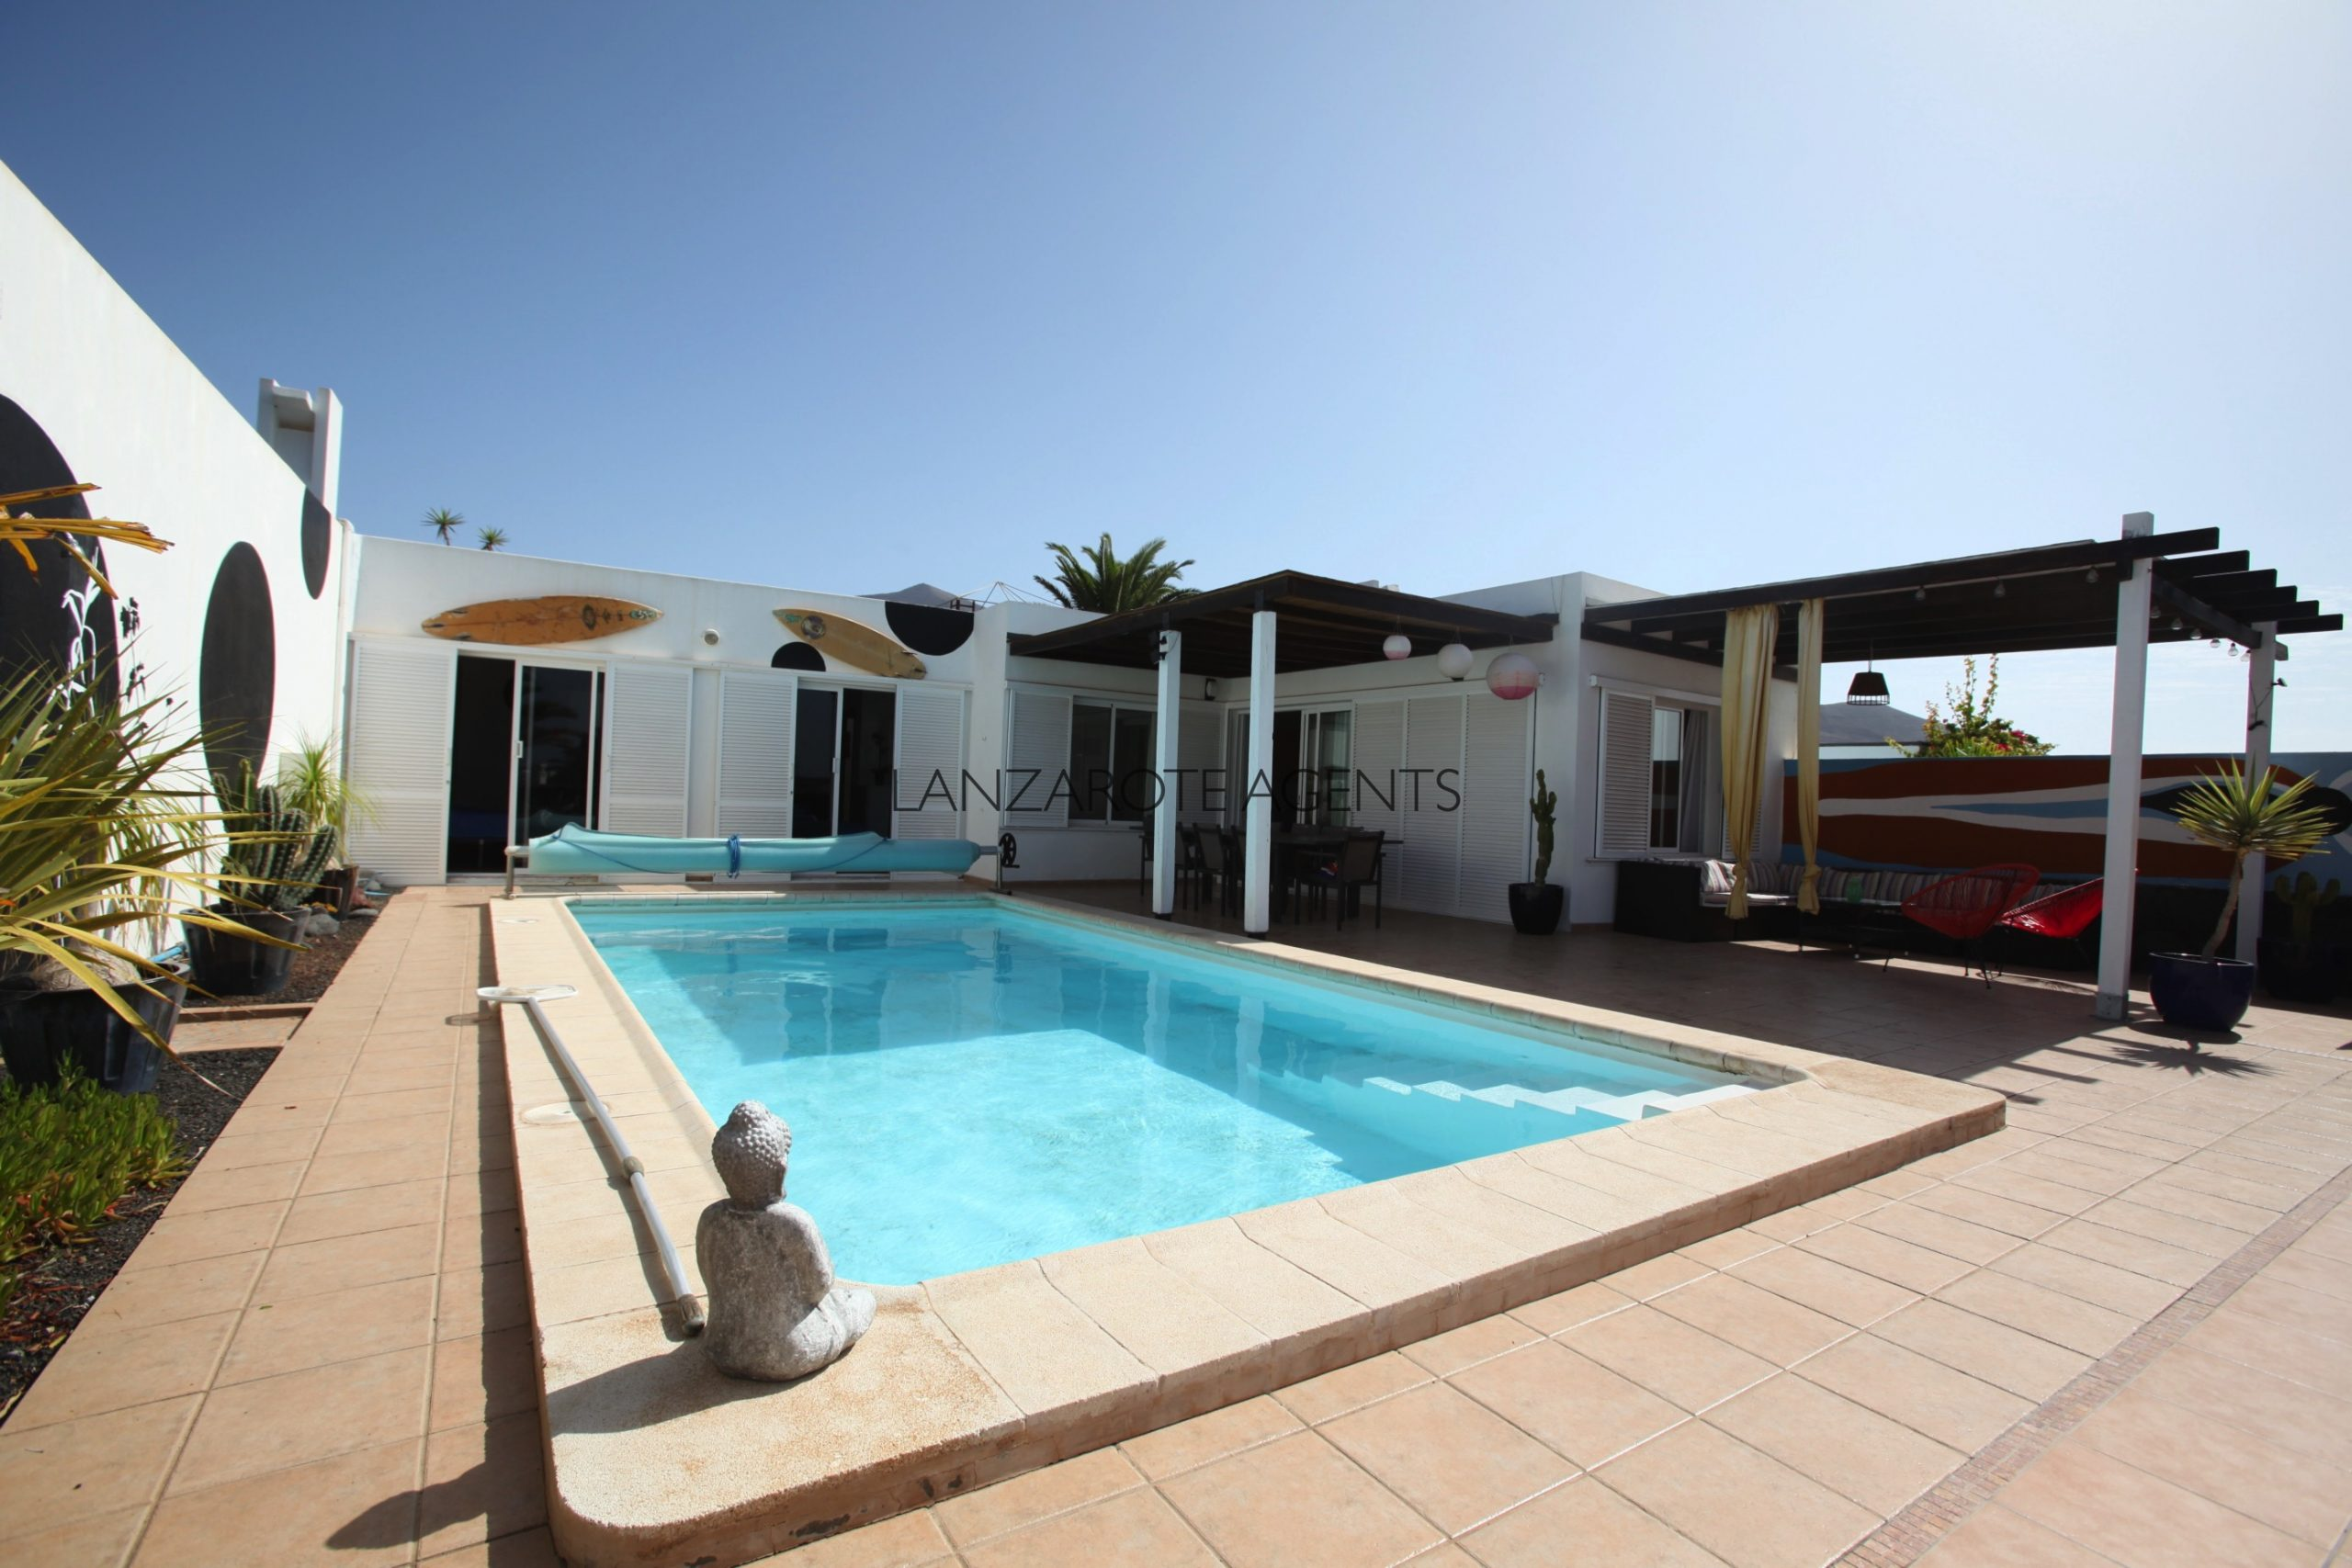 Fantastic Detached 3 Bedroom Villa Located in Las Coloradas in Playa Blanca with Great Panoramic Sea Views and Private Pool